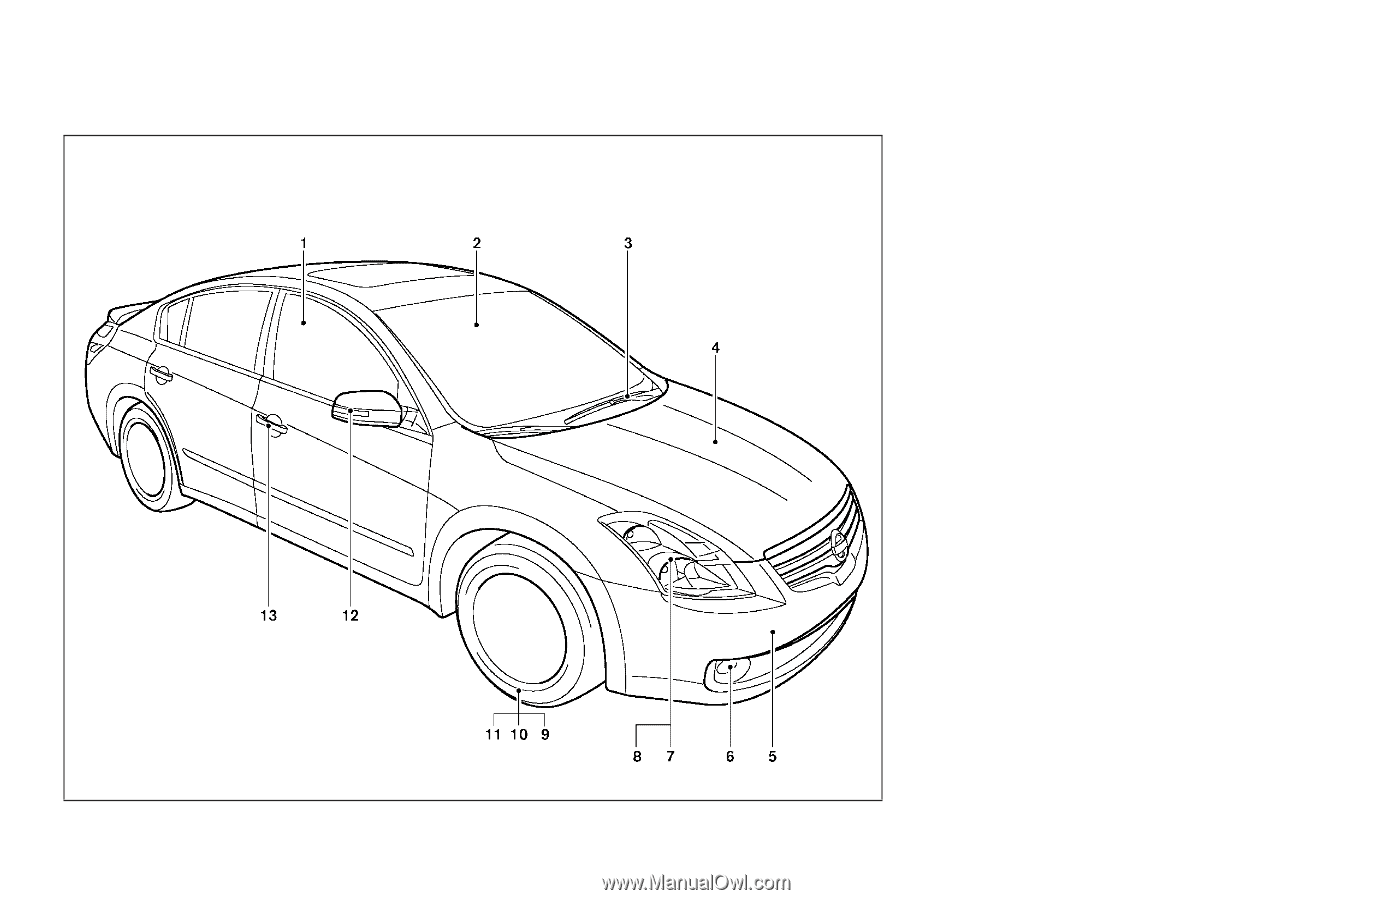 2003 mitsubishi outlander repair manual fuse diagram